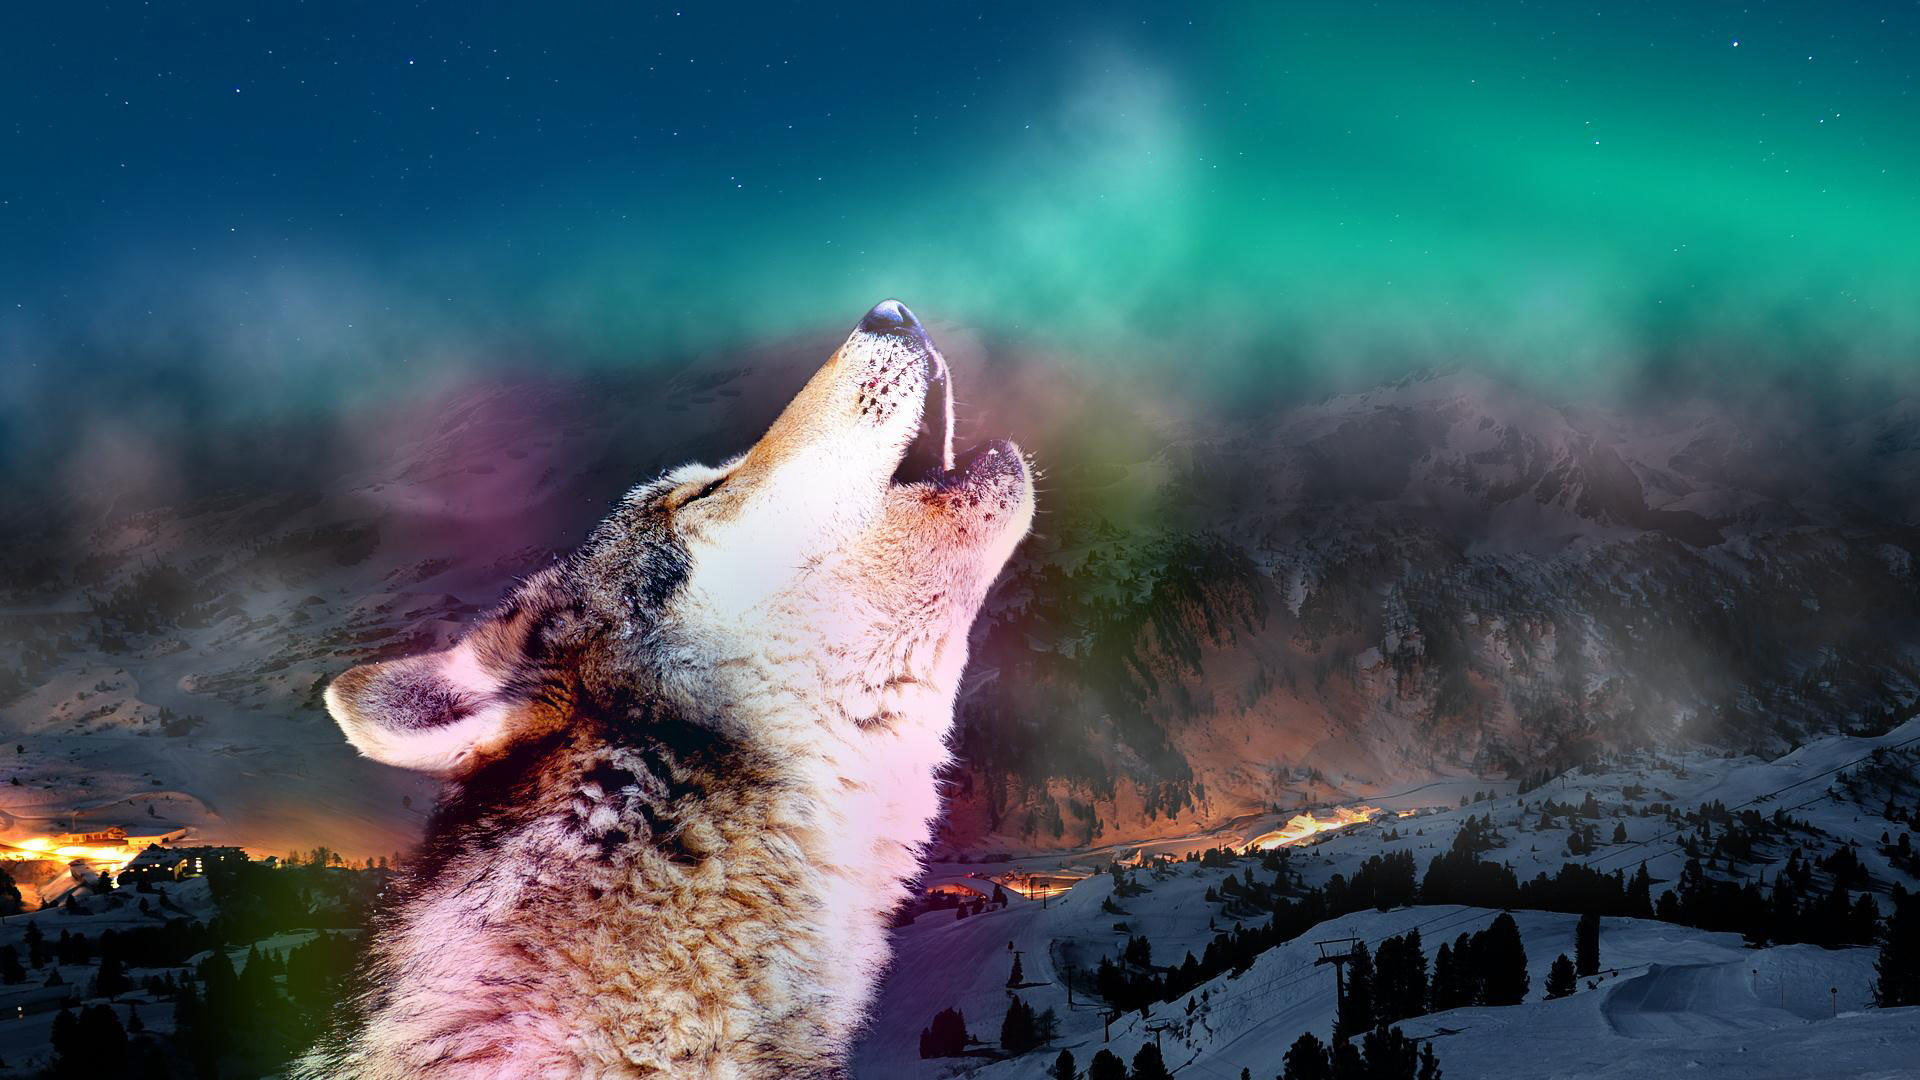 hd pics photos beautiful howling wolf snow ice animated hd quality desktop  background wallpaper